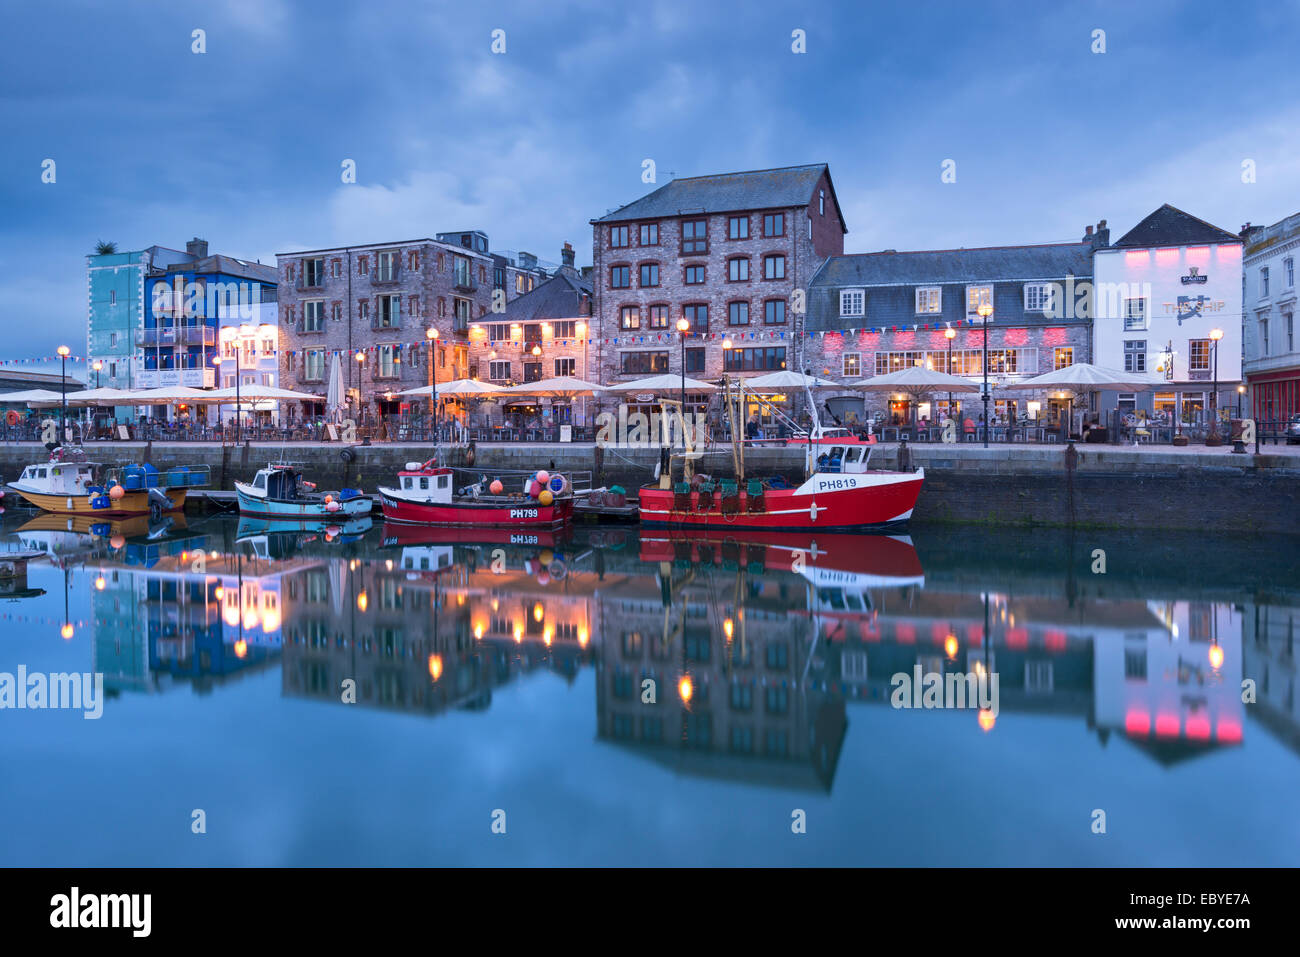 Abend am Barbican, Plymouth, Devon. (Juni) im Sommer 2014. Stockfoto